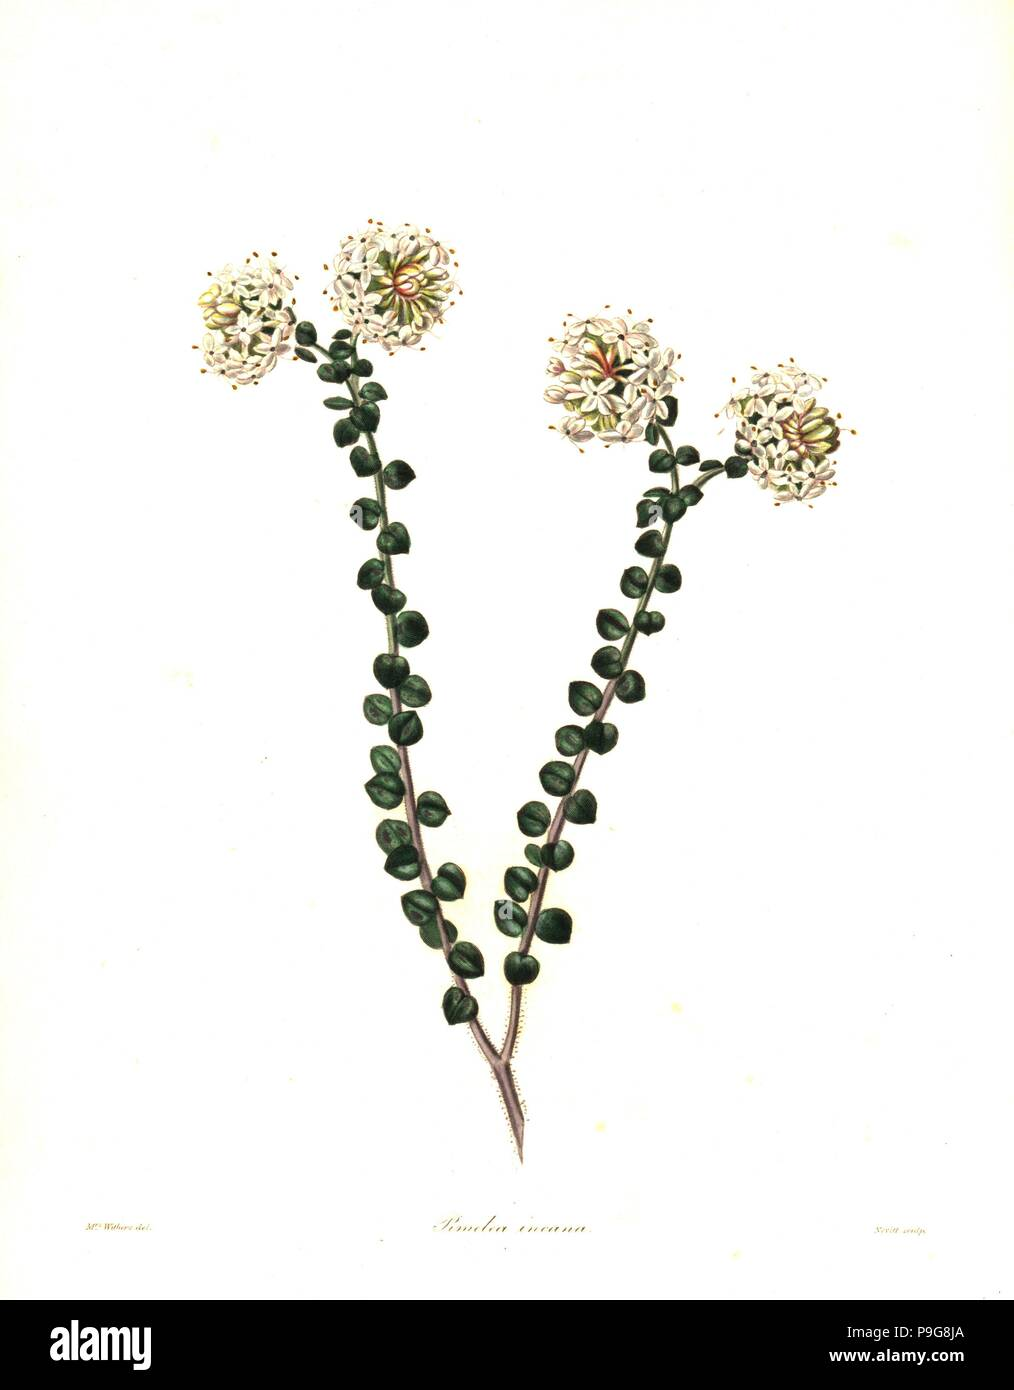 Pimelea nivea (Hoary pimelea, Pimelea incana). Handcoloured copperplate engraving by S. Nevitt after a botanical illustration by Mrs Augusta Withers from Benjamin Maund and the Rev. John Stevens Henslow's The Botanist, London, 1836. - Stock Image